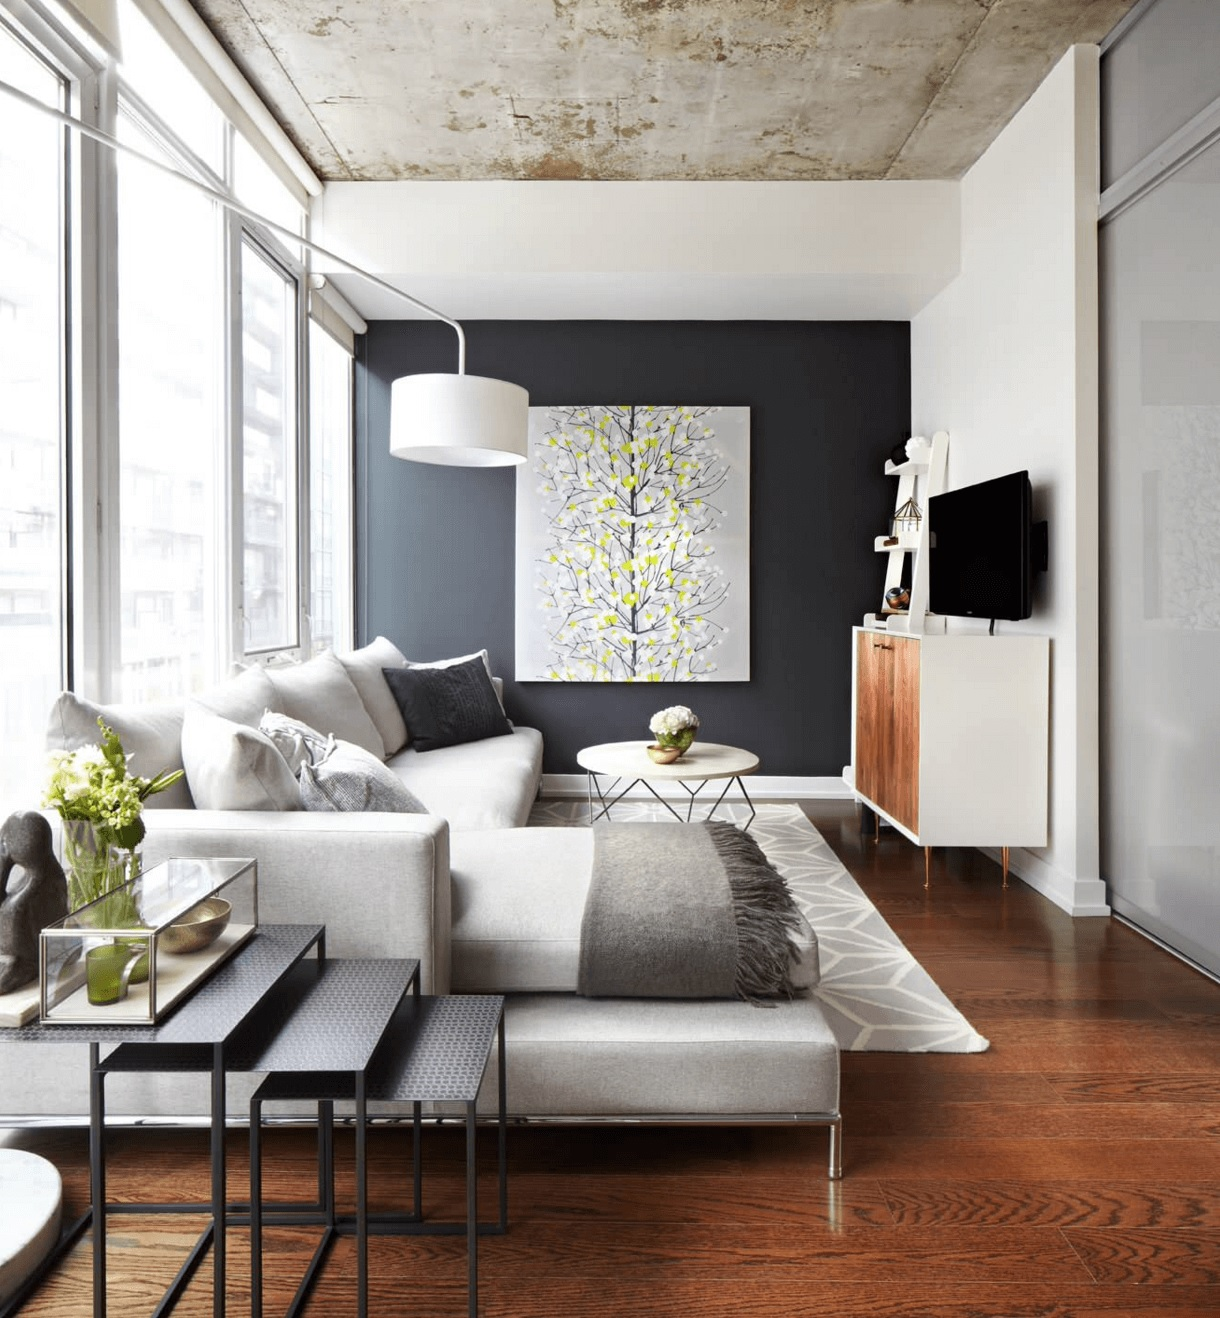 How To Create A Living Room Feature Wall – My Fashion Life